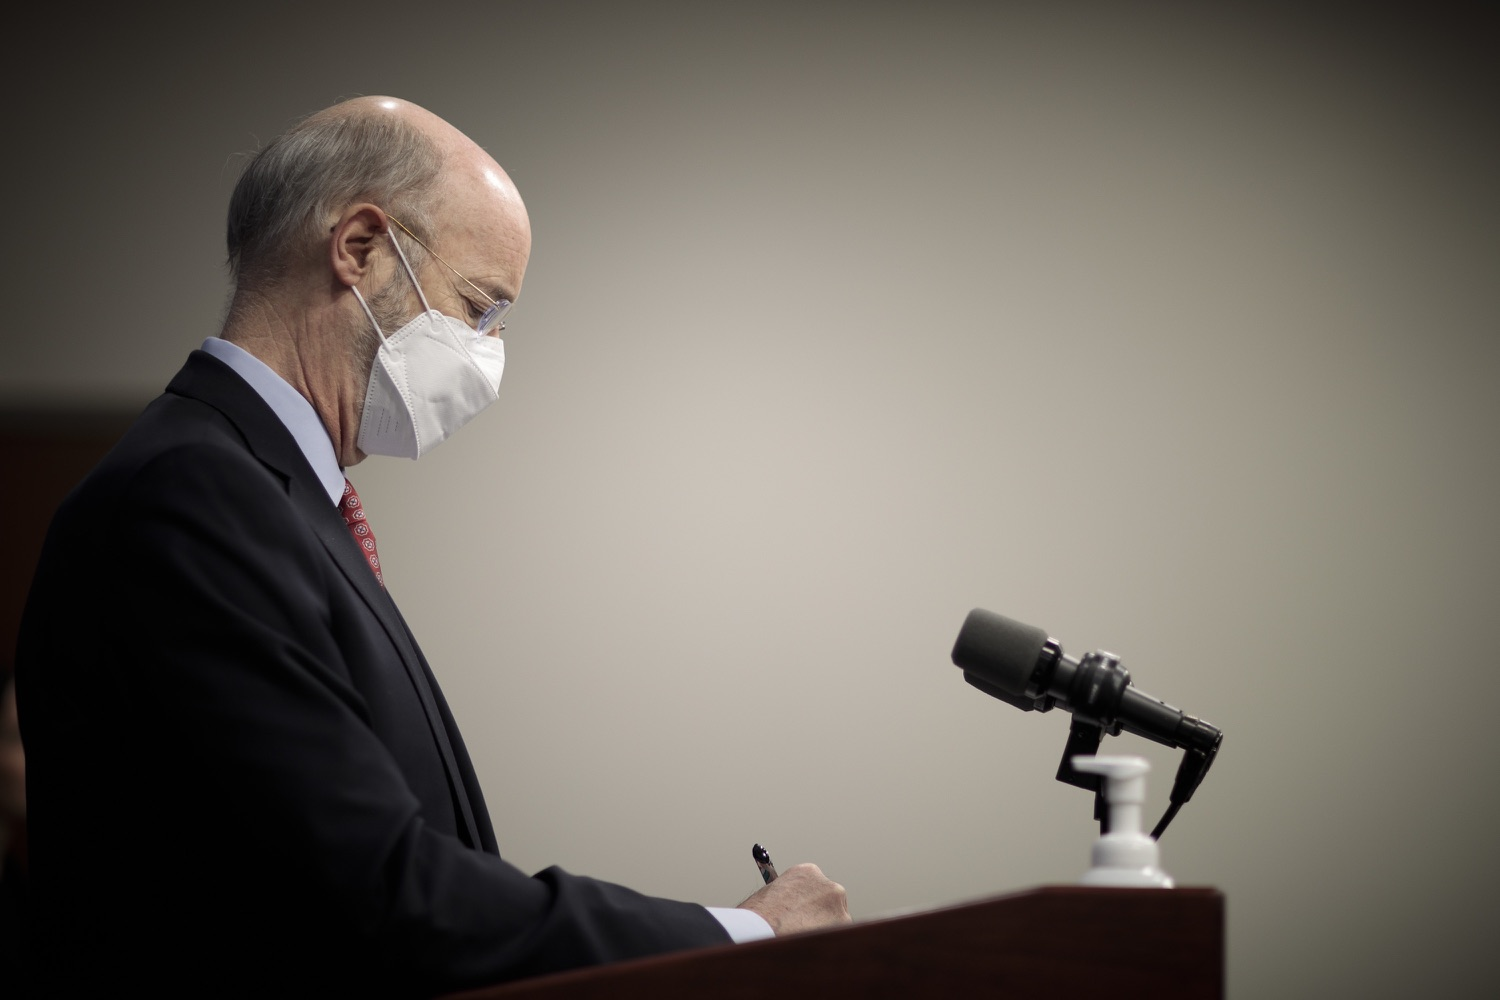 "<a href=""https://filesource.wostreaming.net/commonwealthofpa/photo/18535_gov_nellie_bly_dz_09.jpg"" target=""_blank"">⇣ Download Photo<br></a>Pennsylvania Governor Tom Wolf taking notes as a journalist asks a question at the press conference.  Governor Tom Wolf wants to bet on 44,000 students to help them earn a college degree while graduating with less debt and building successful lives in Pennsylvania. Today, the governor held a press conference to discuss how his historic Nellie Bly Scholarship Program would provide need-based financial assistance for students at 14 universities in the states system. Harrisburg, PA  February 17, 2021"